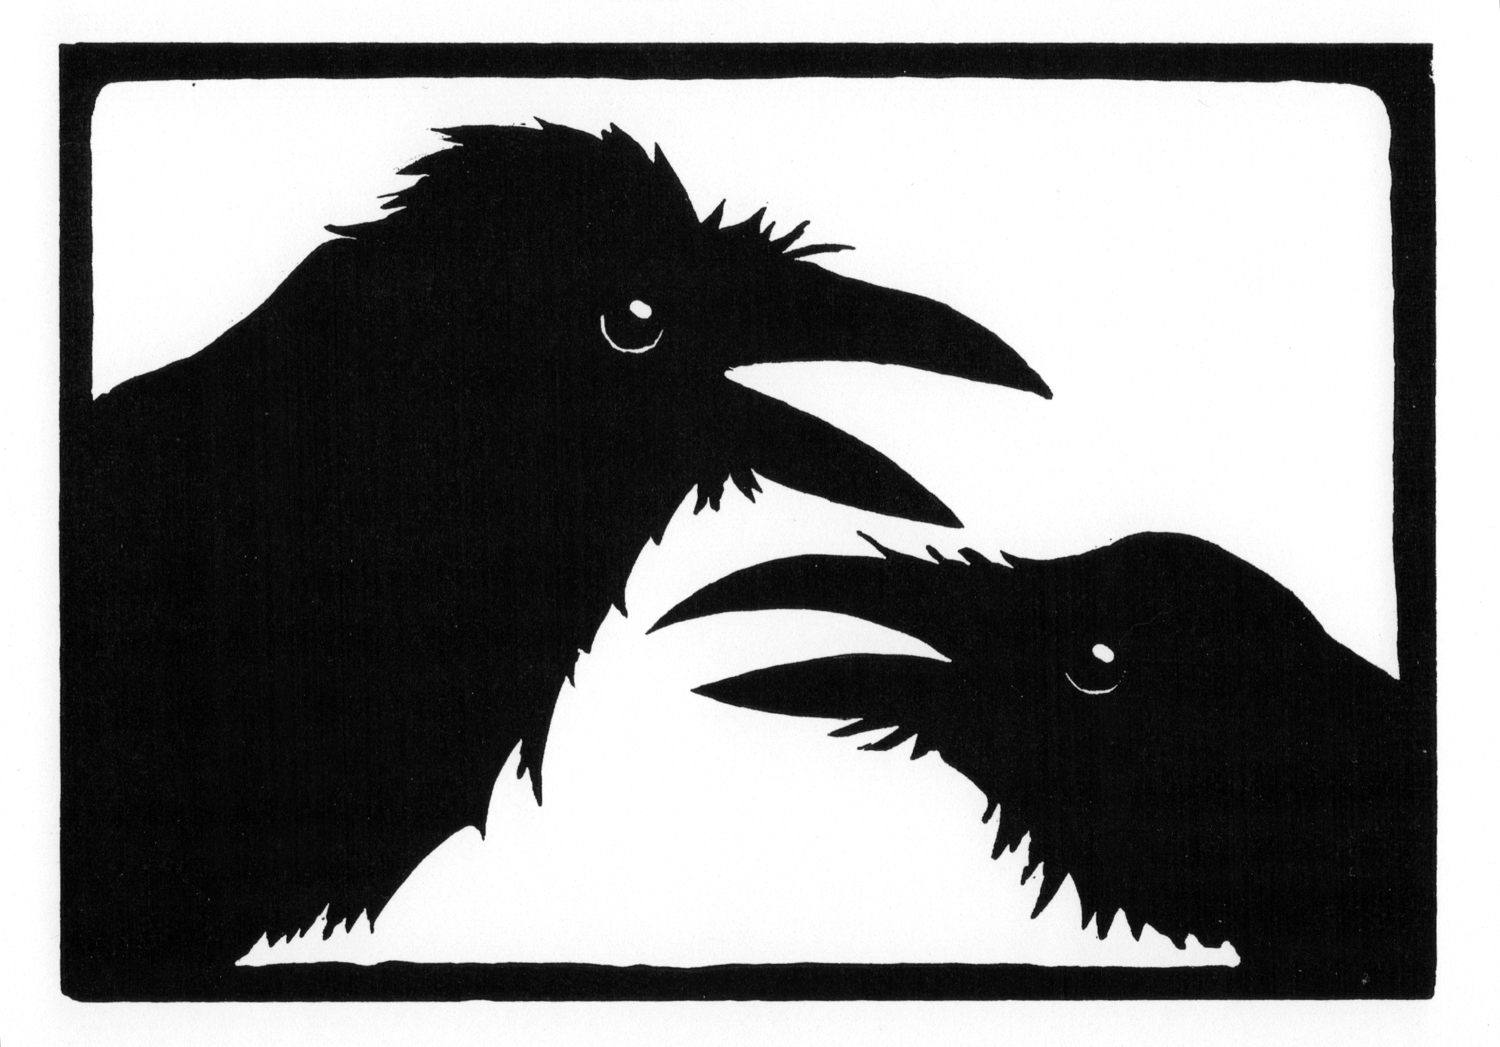 Raven Chat • © Fred Montague  $48 • image 8 x 5.5 • mat 14 x 11  Edition size: 88 • status: low quantity